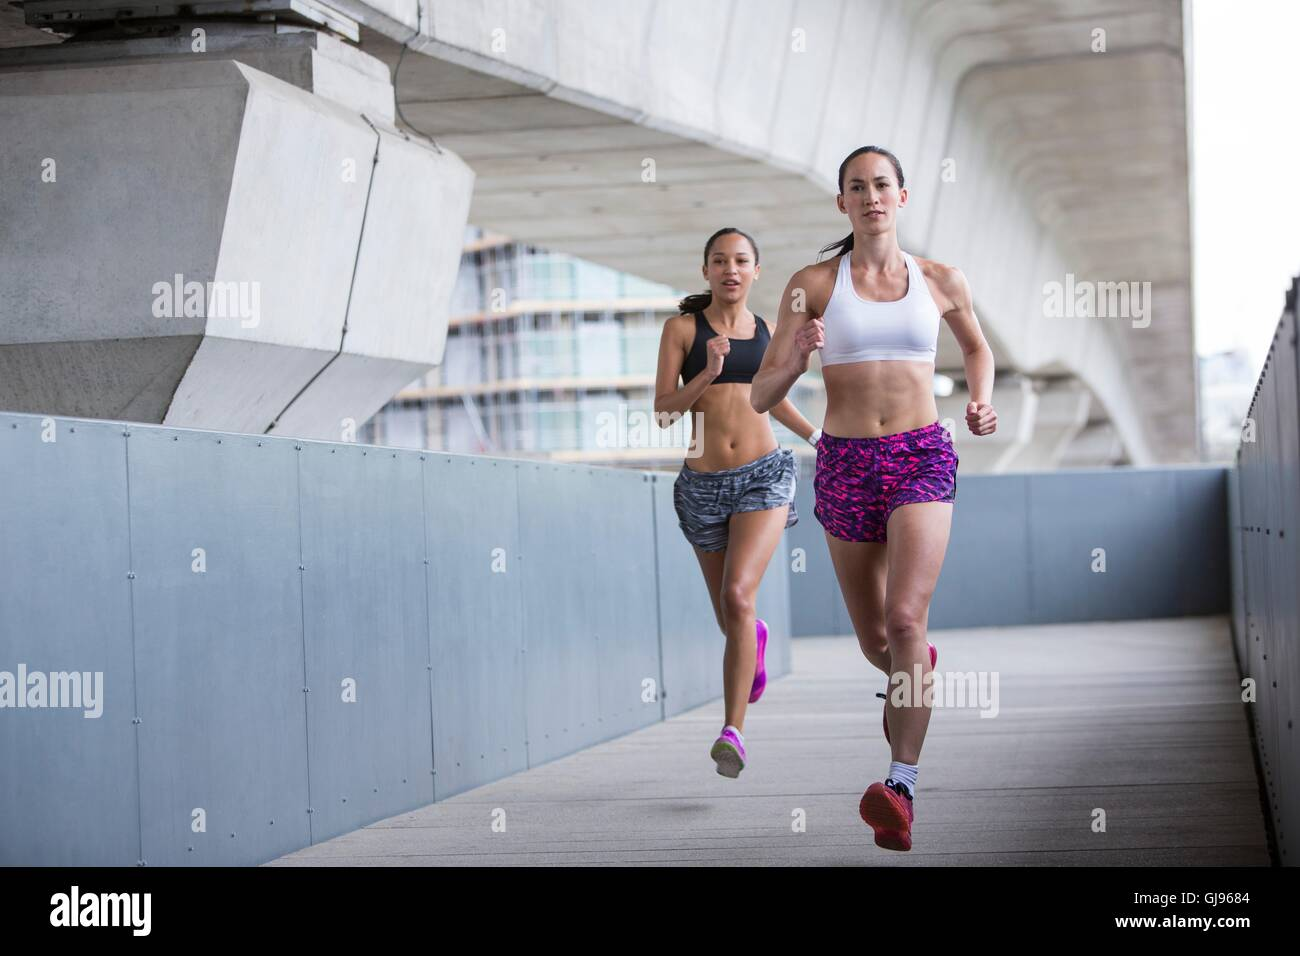 MODEL RELEASED. Two young women racing. - Stock Image